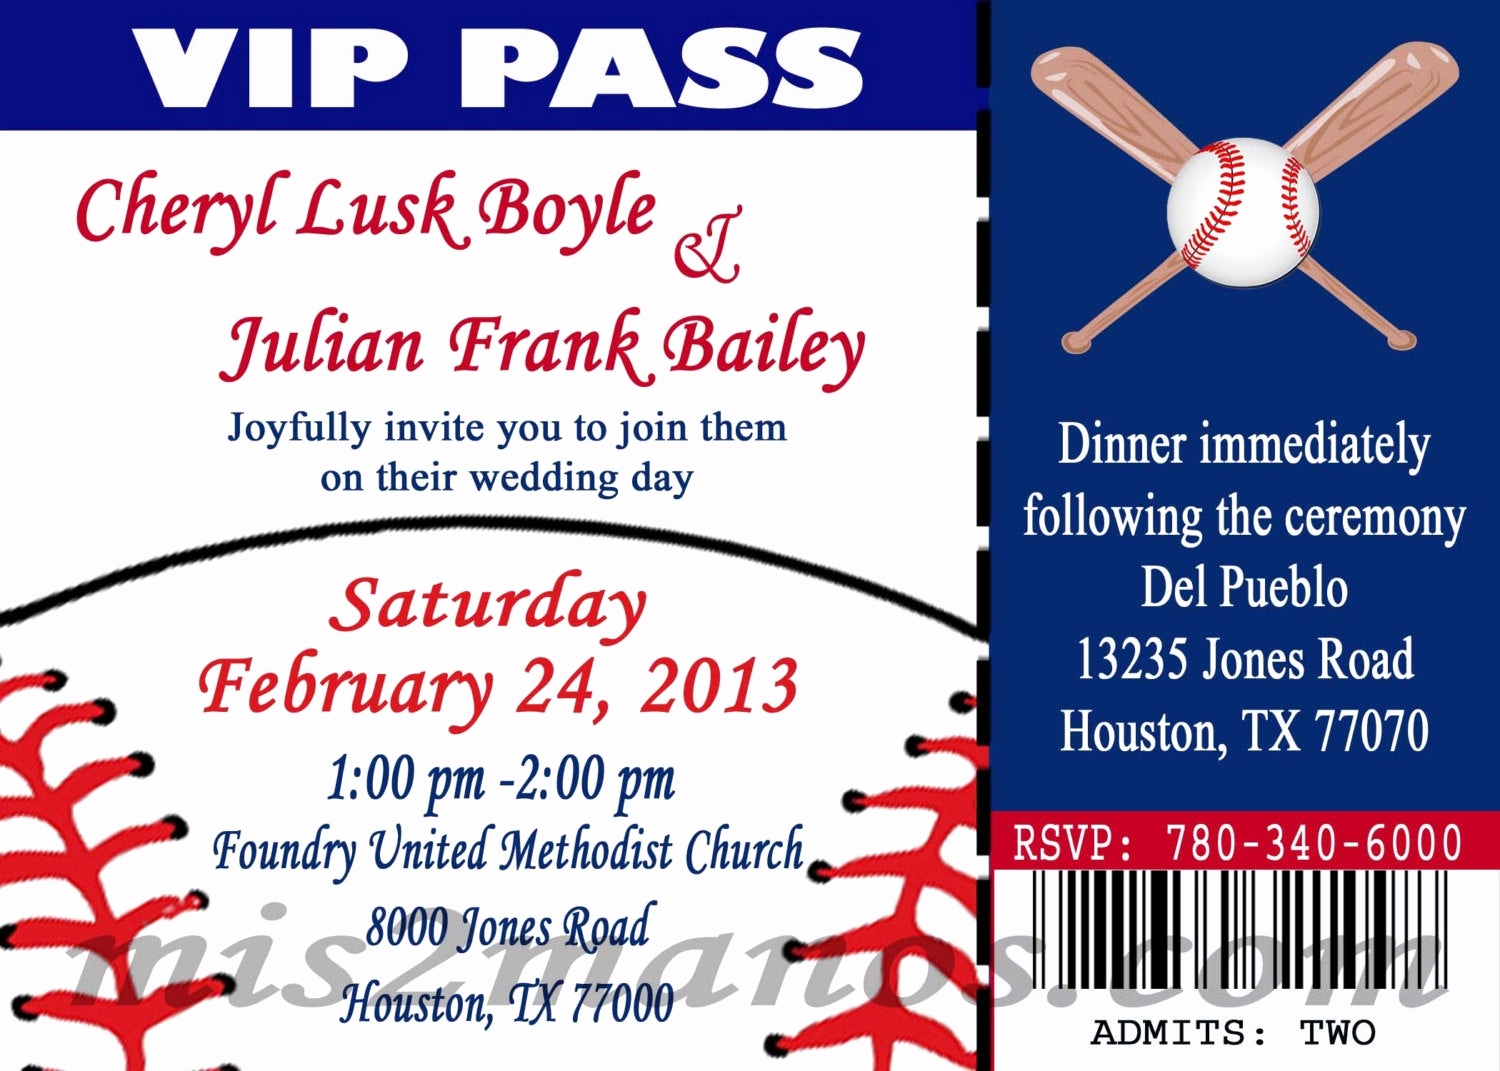 Baseball Ticket Invitation Template Free Inspirational Baseball theme Wedding Party Printable Ticket Invitations Diy